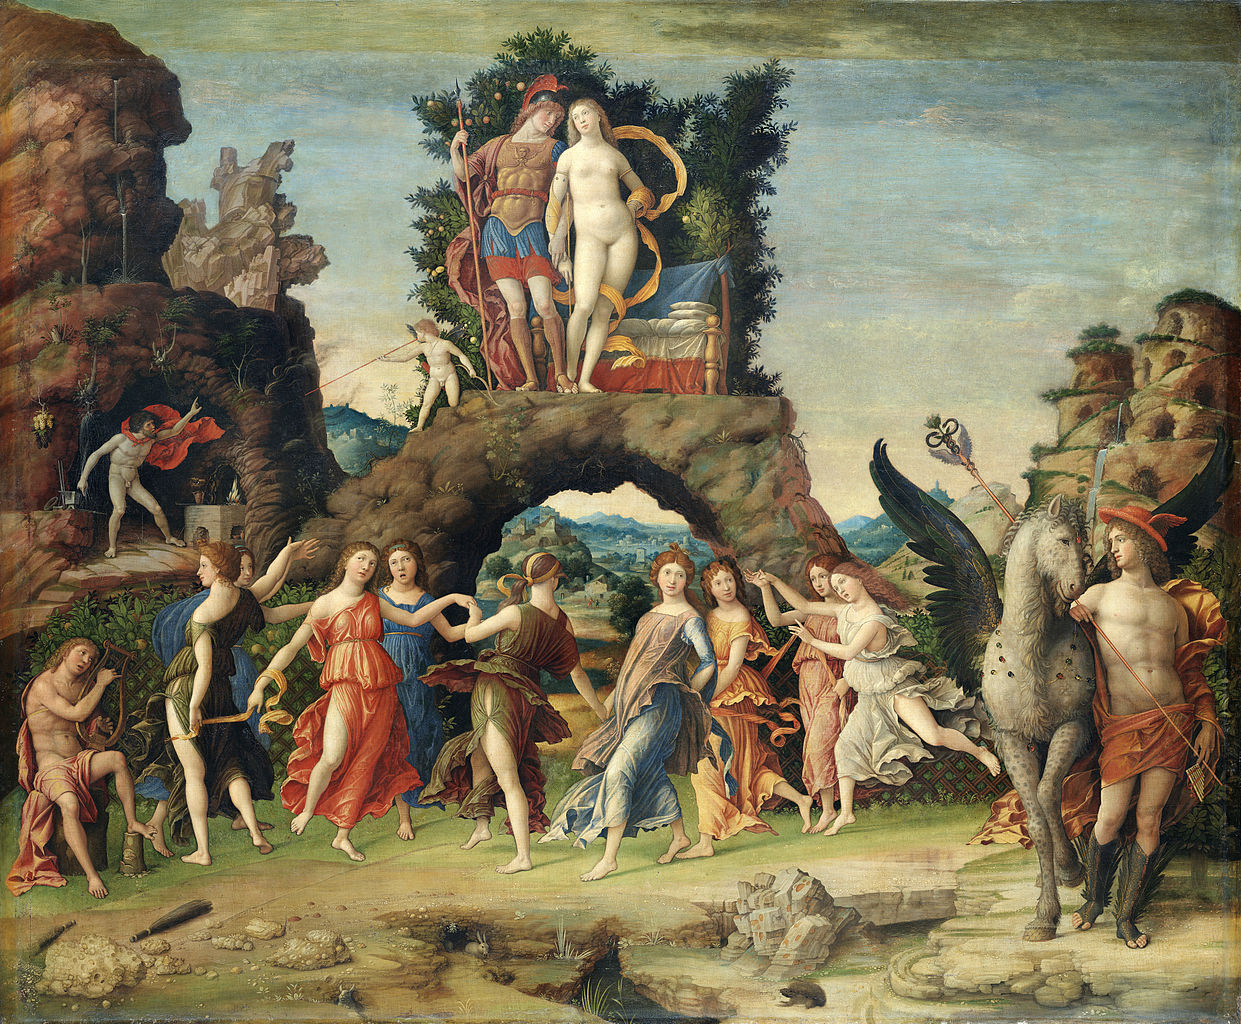 Parnasse,_by_Andrea_Mantegna,_from_C2RMF_retouched